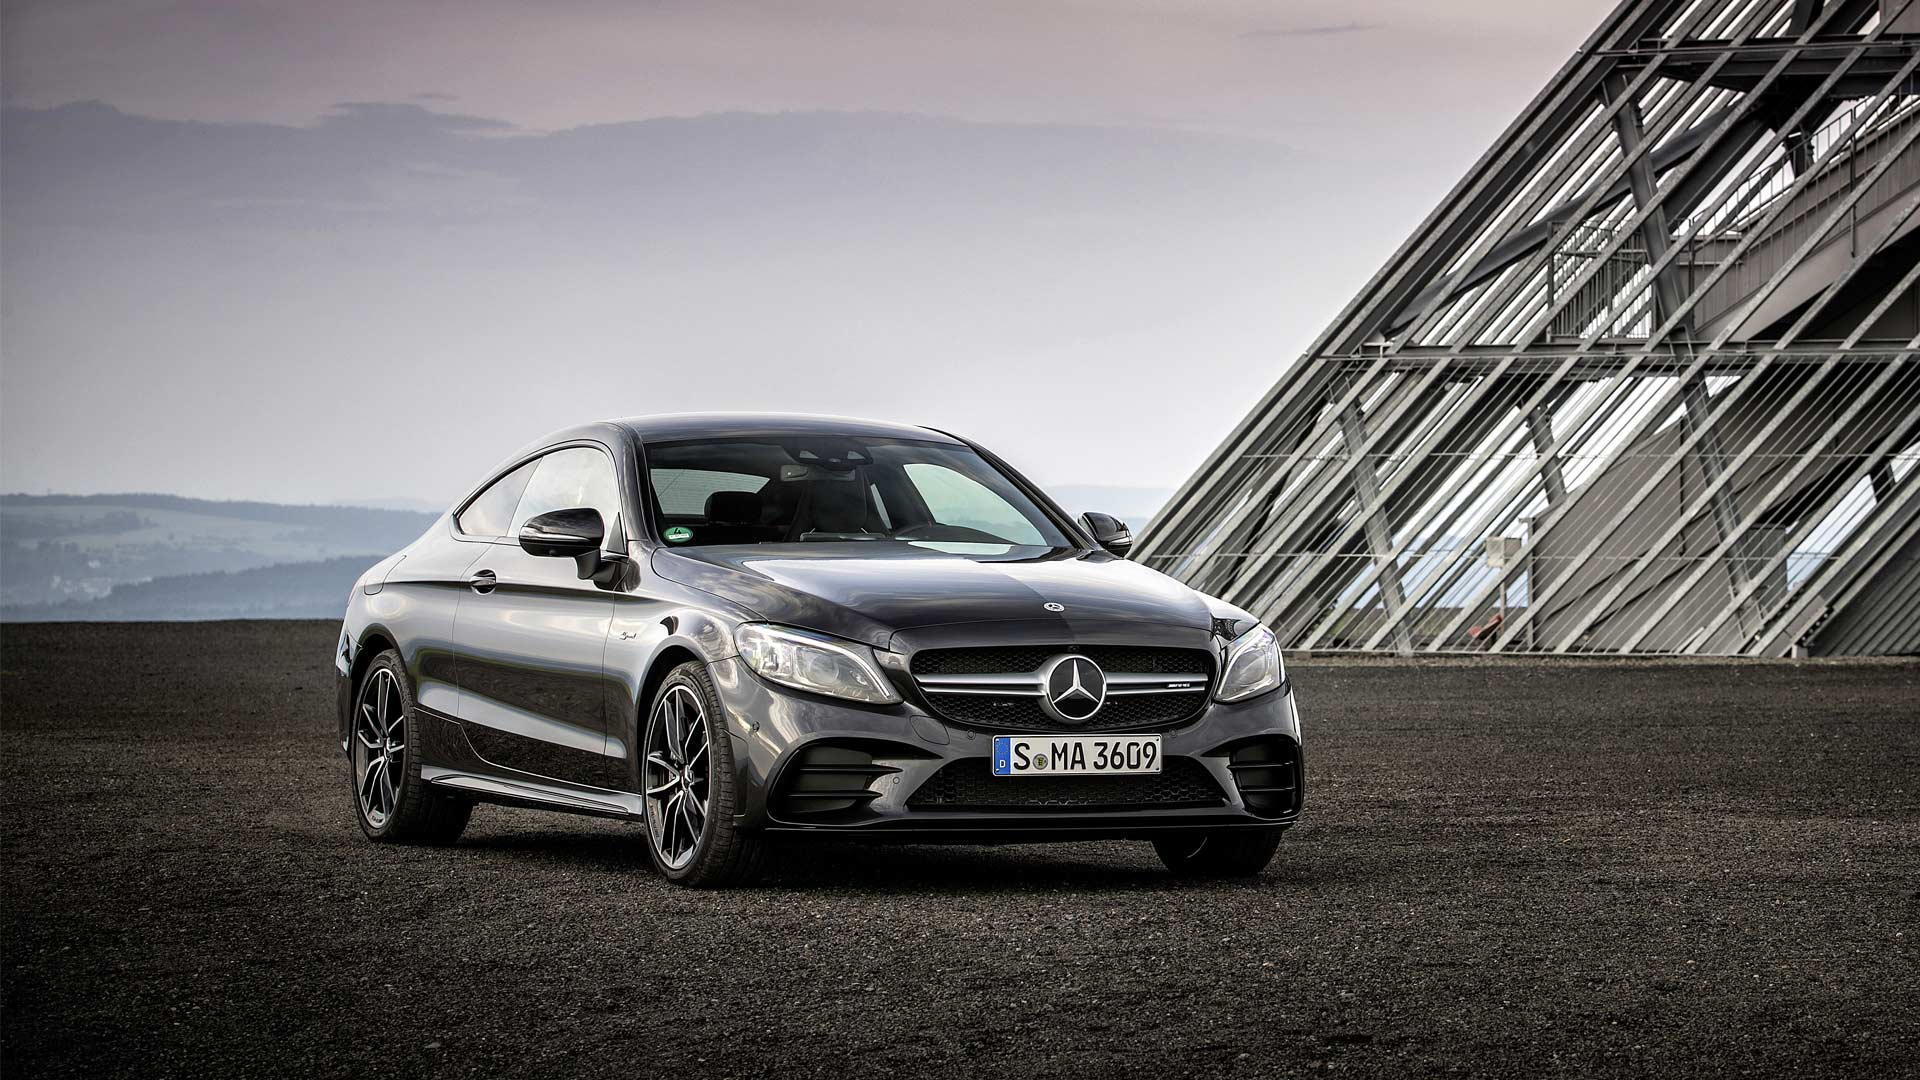 New Mercedes-AMG-C-43-4MATIC-Coupé_3